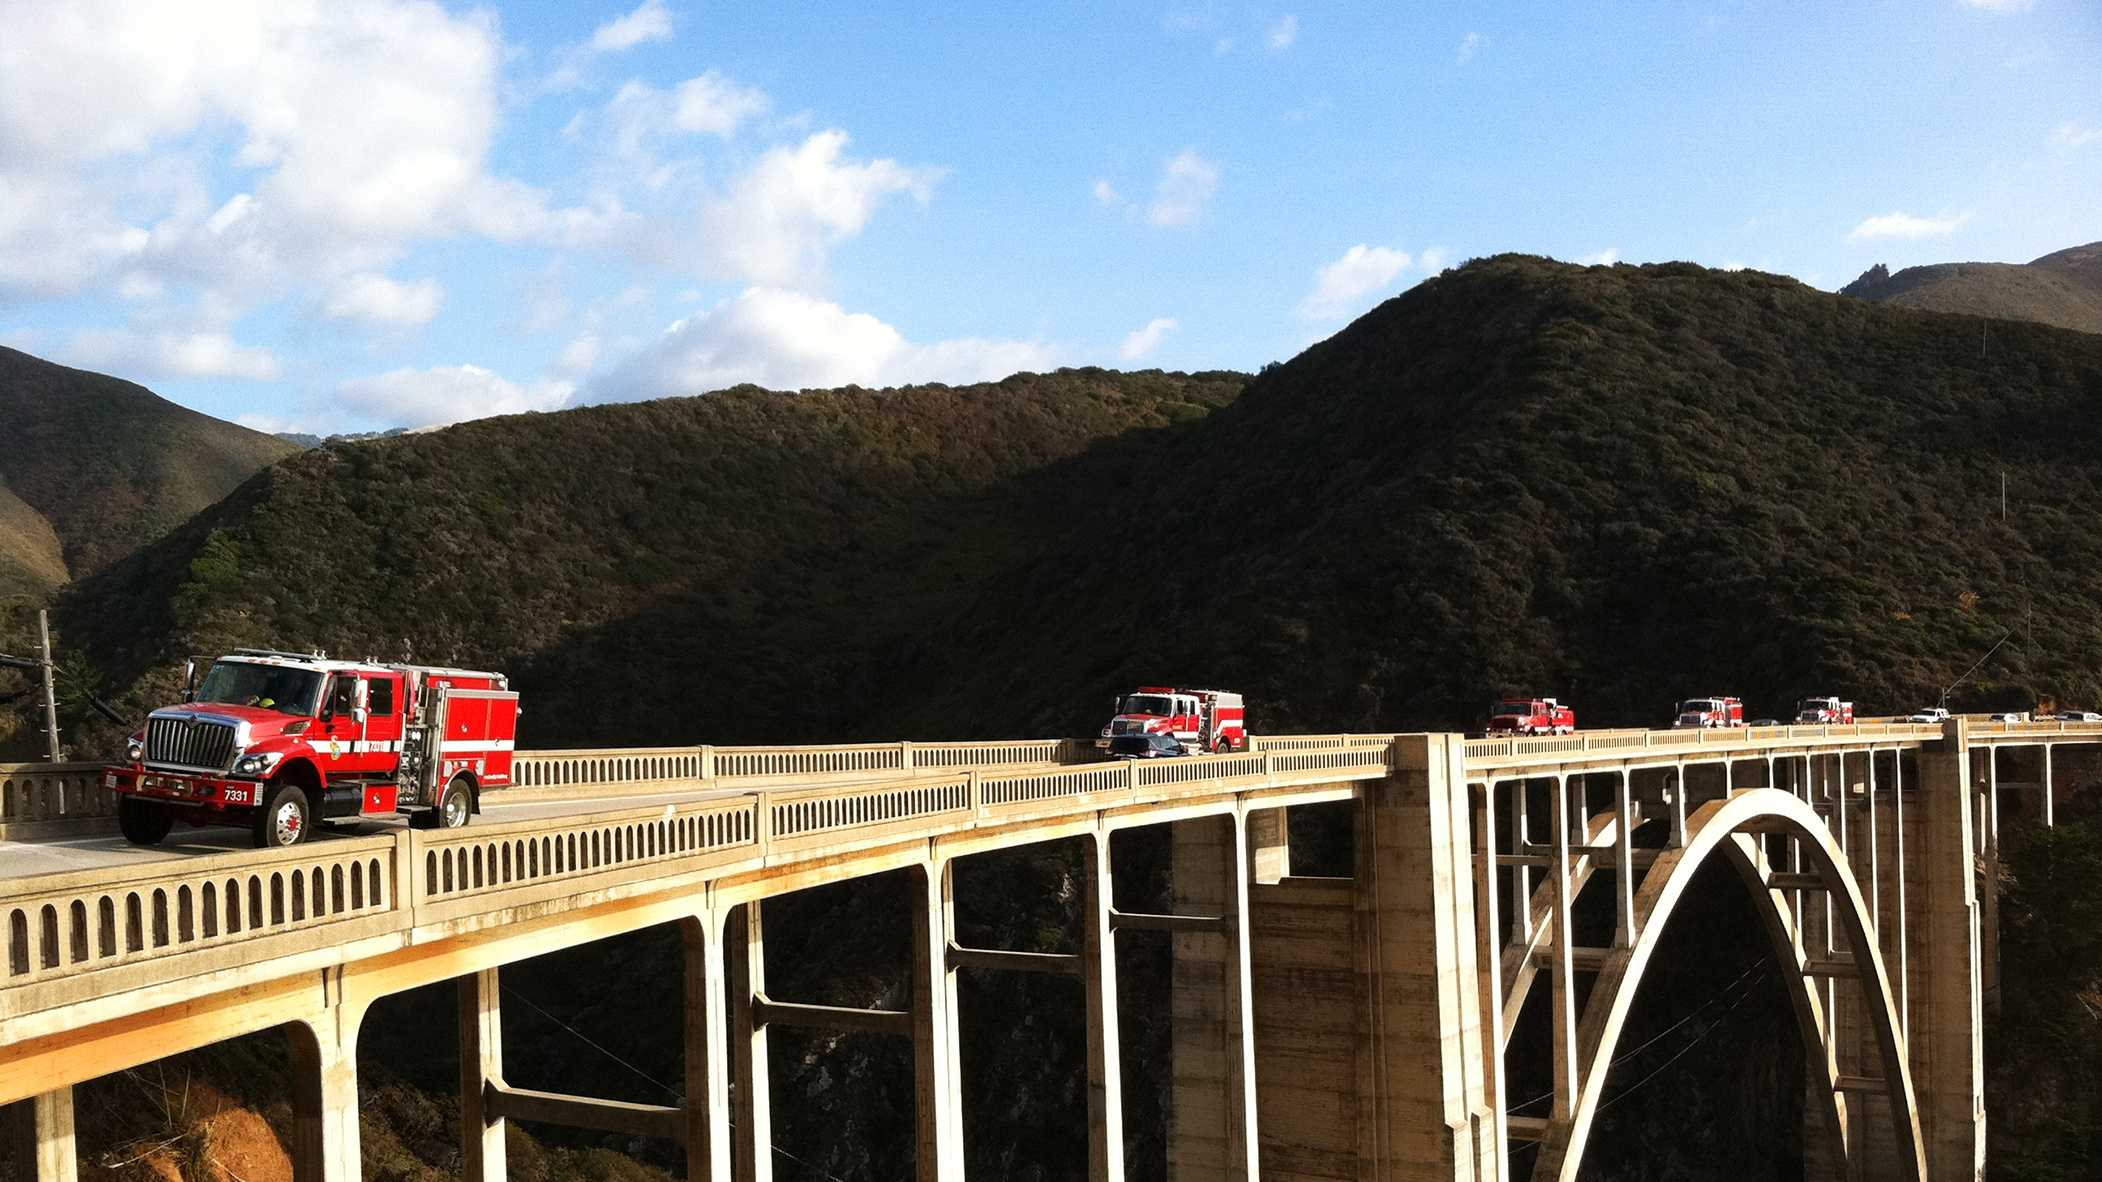 Firefighters are seen leaving Big Sur over the Bixby Bridge.